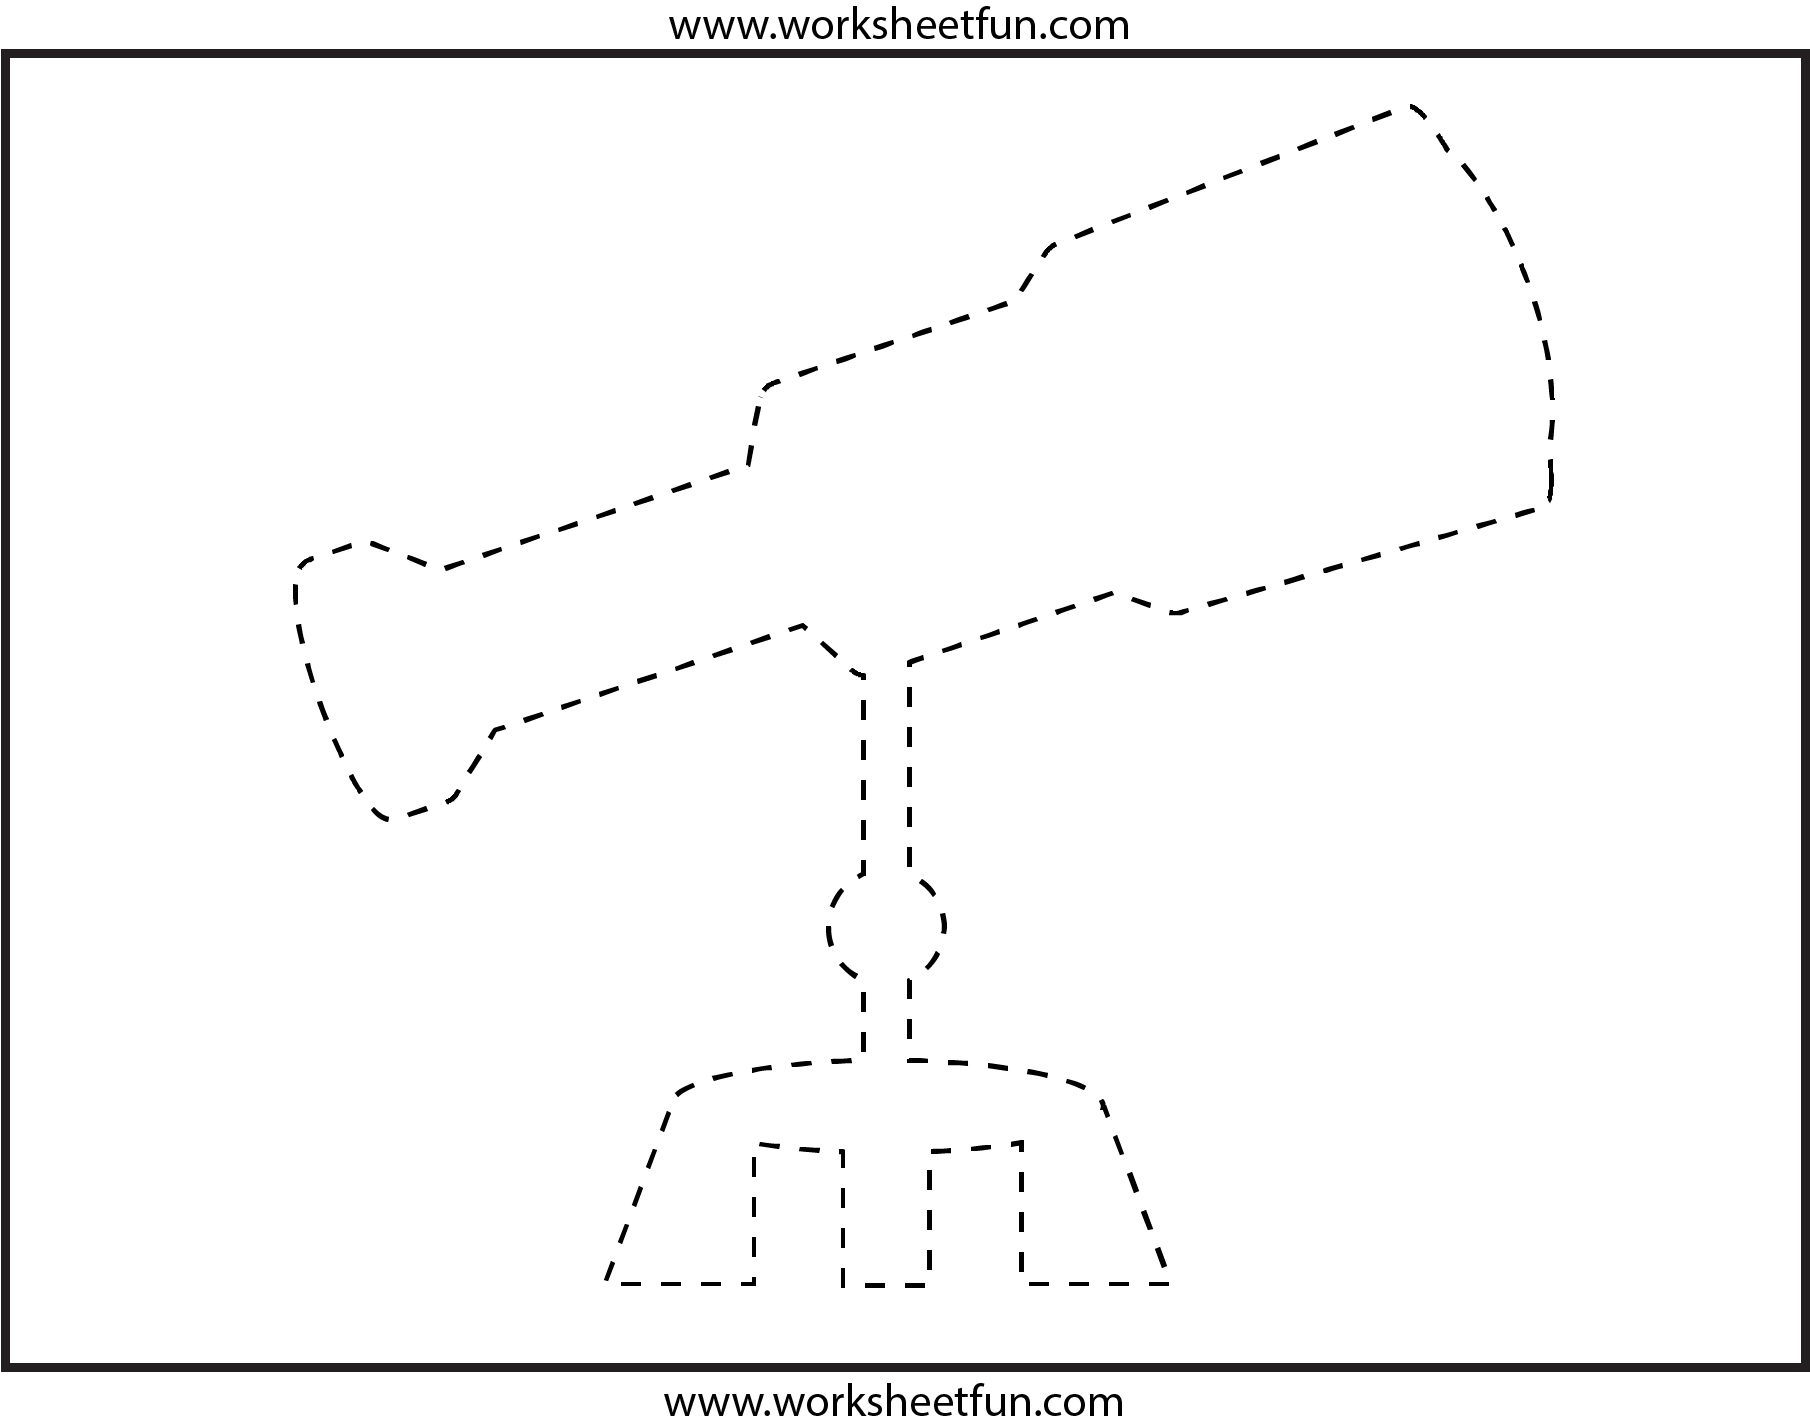 Picture Tracing Telescope 1 Worksheet Free Printable